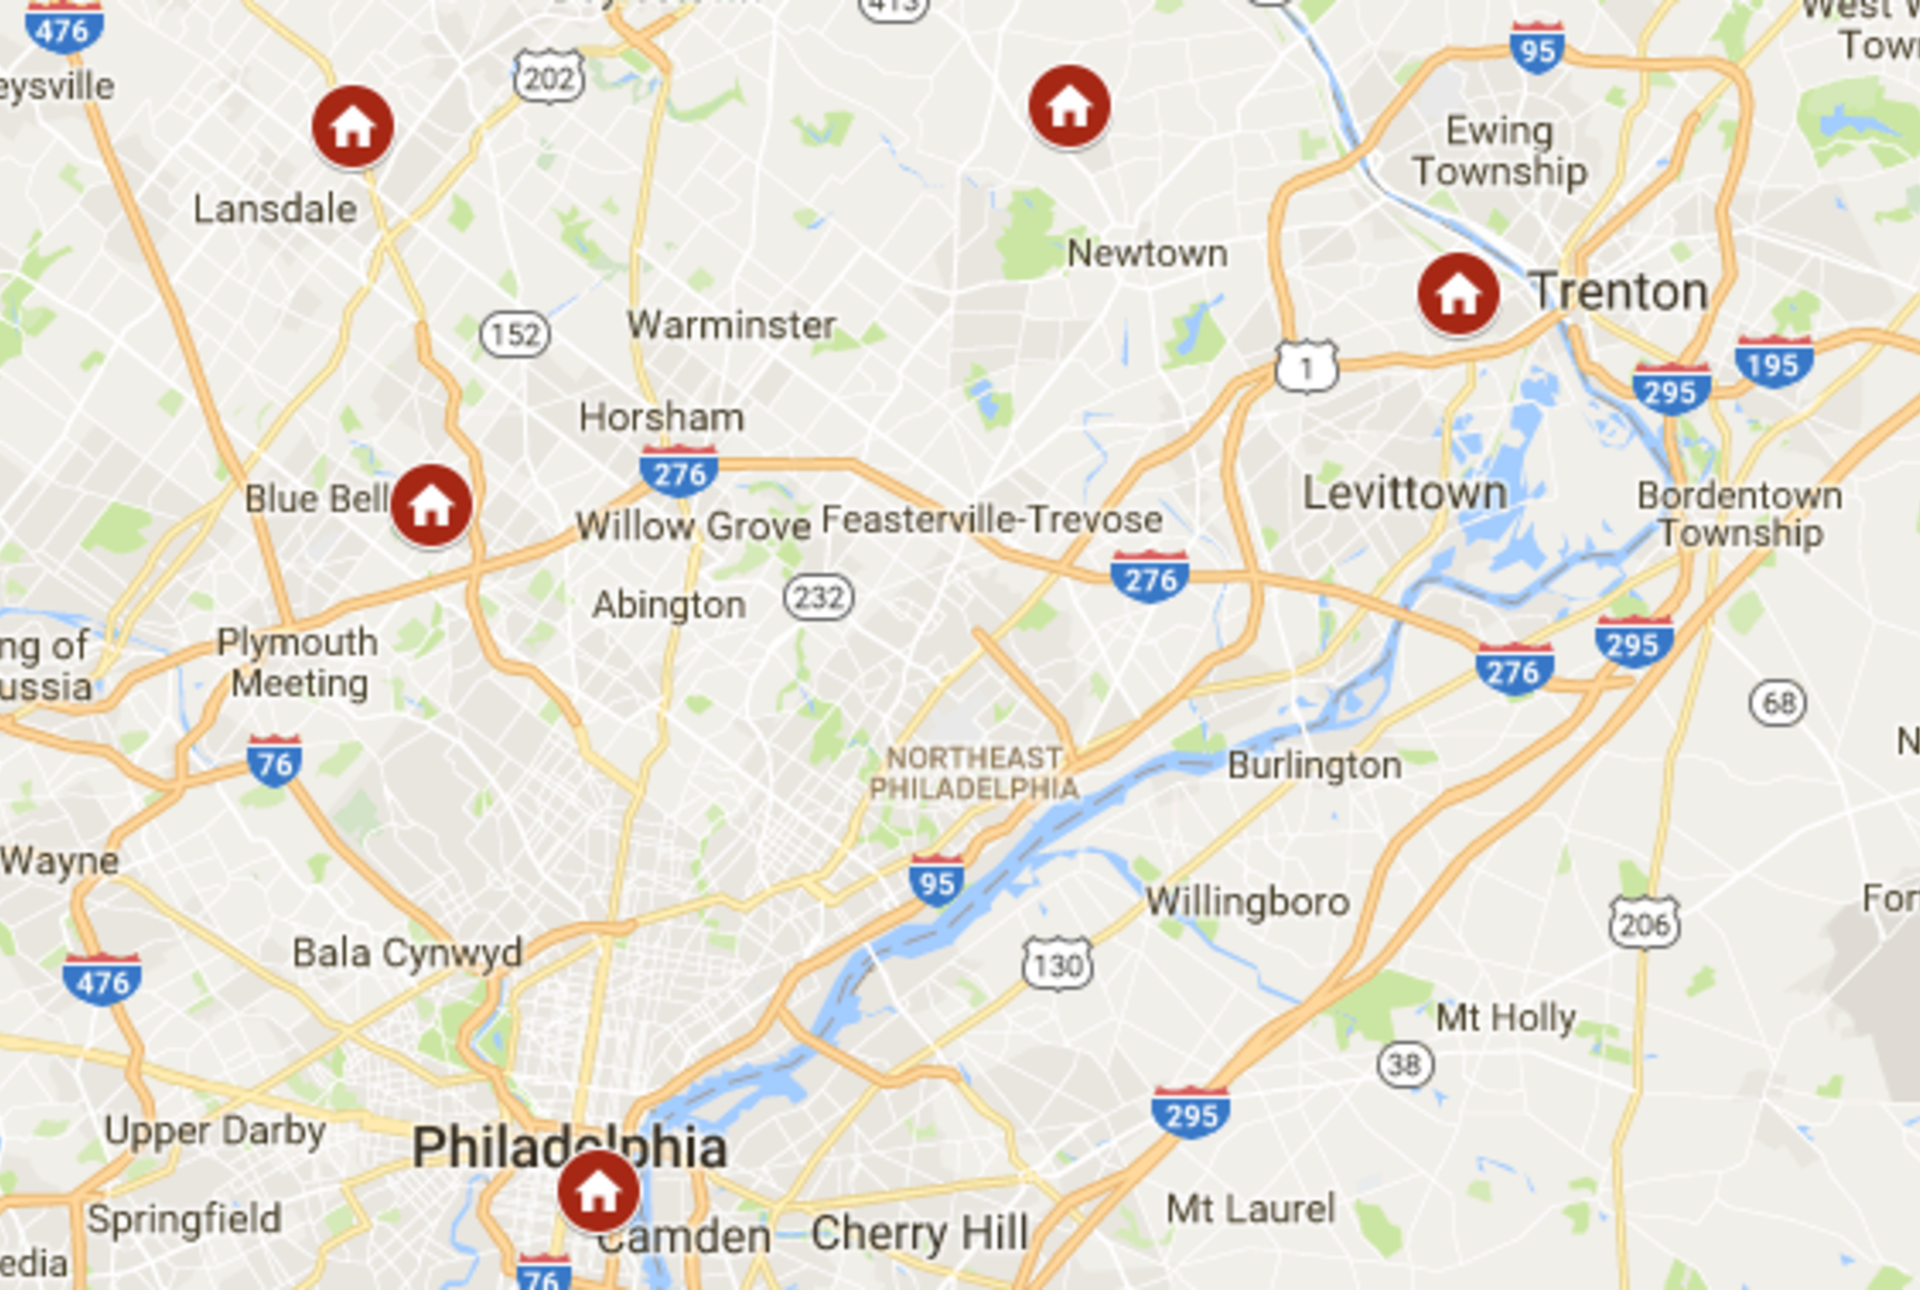 Keller Williams Newtown's open houses August 19th – August 20th